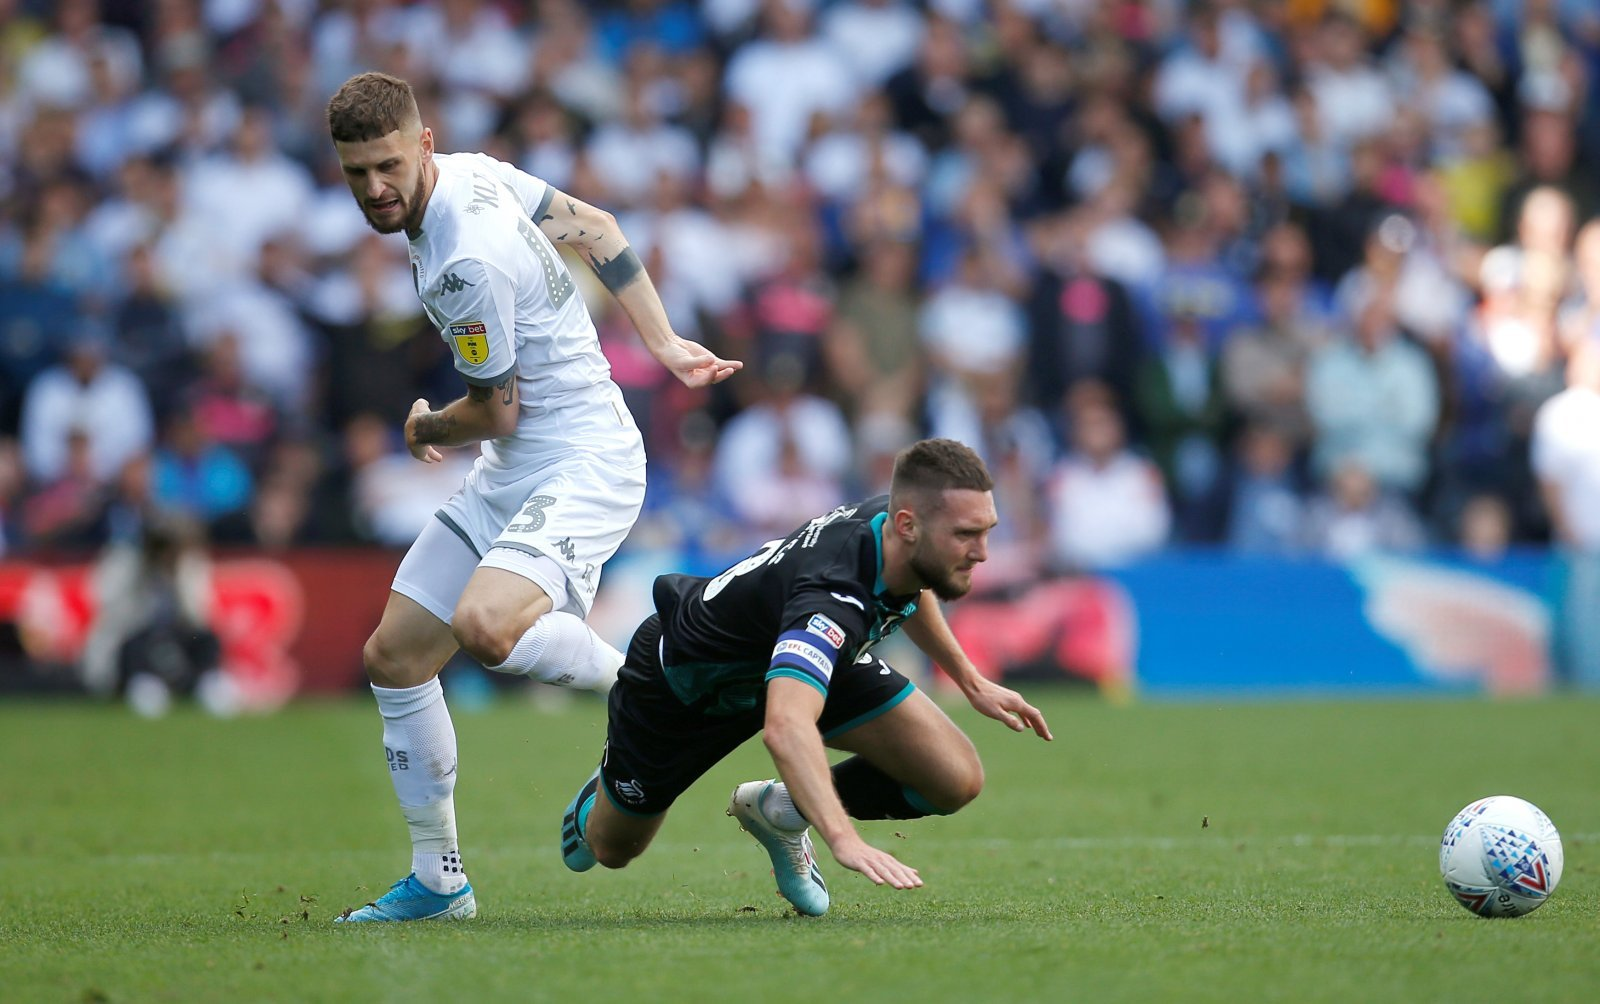 Leeds United: Fans want to see Mateusz Klich dropped from starting 11